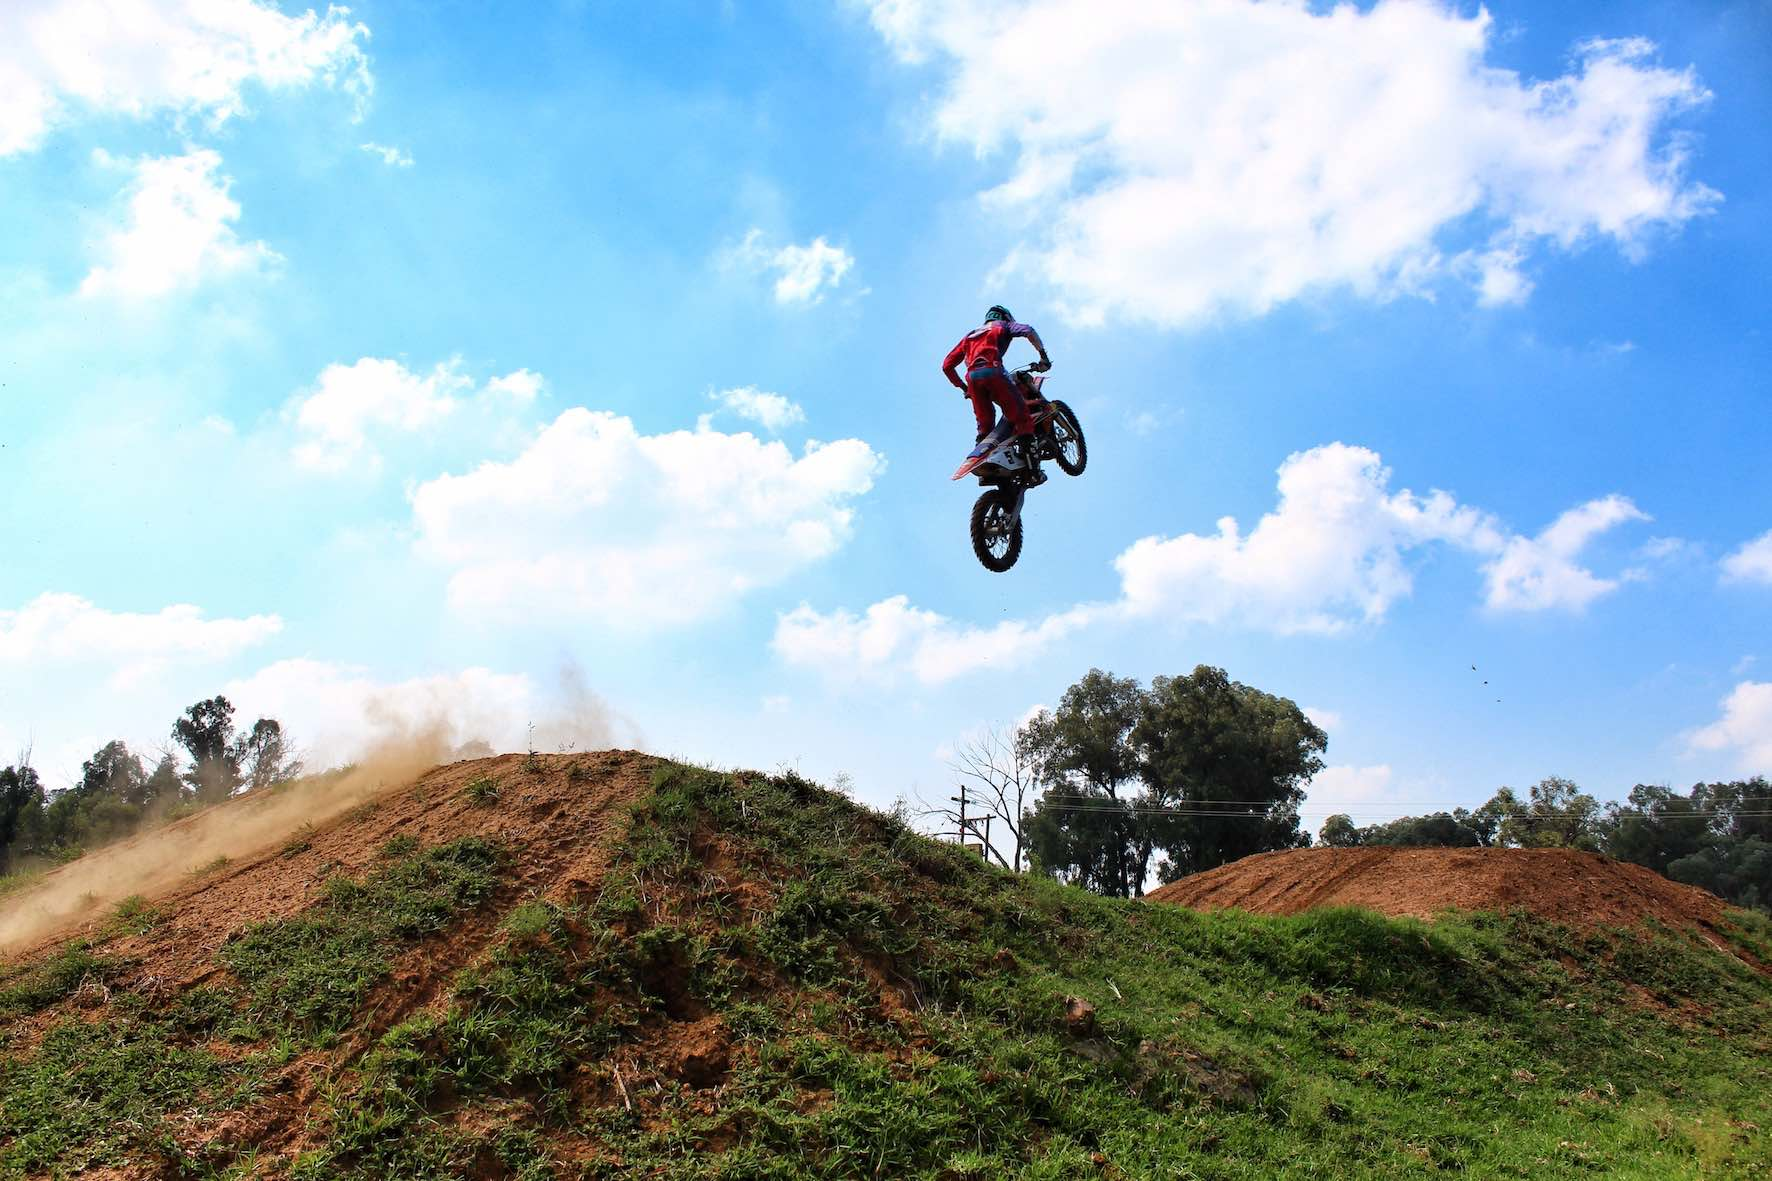 Joshua Mlimi riding the KTM 125cc motocross bike